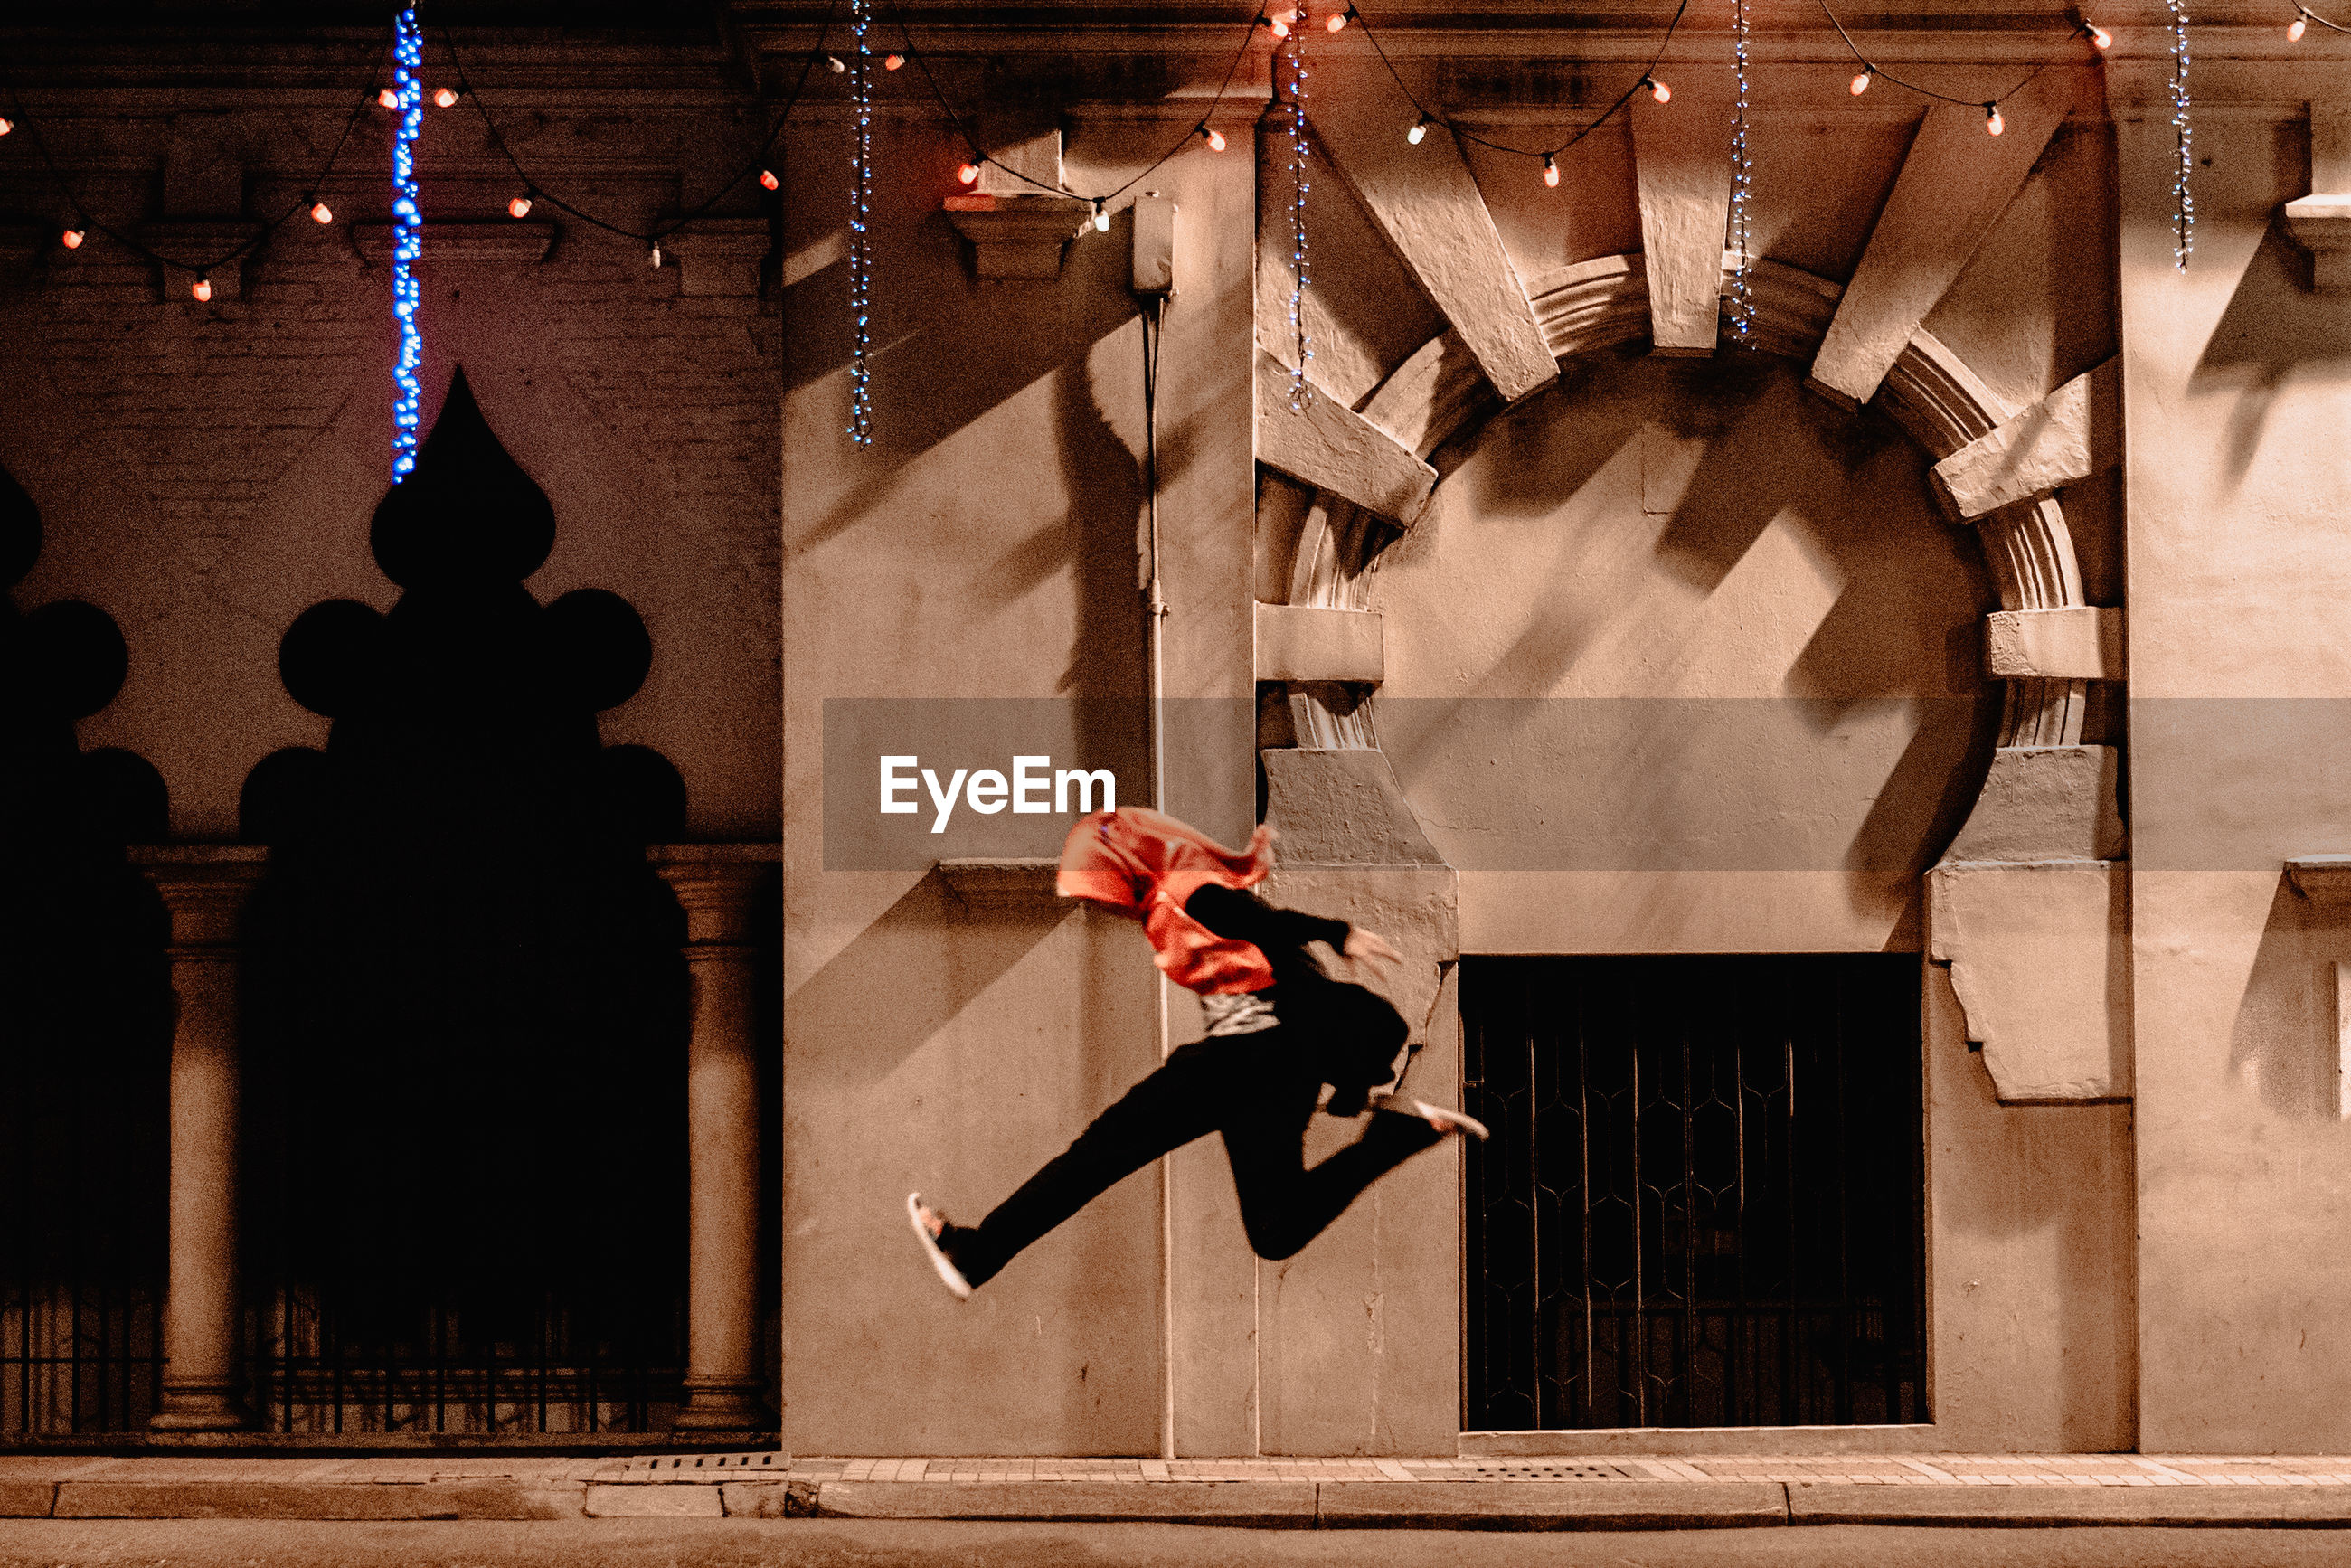 A girl in hijab jumping along the city street at night